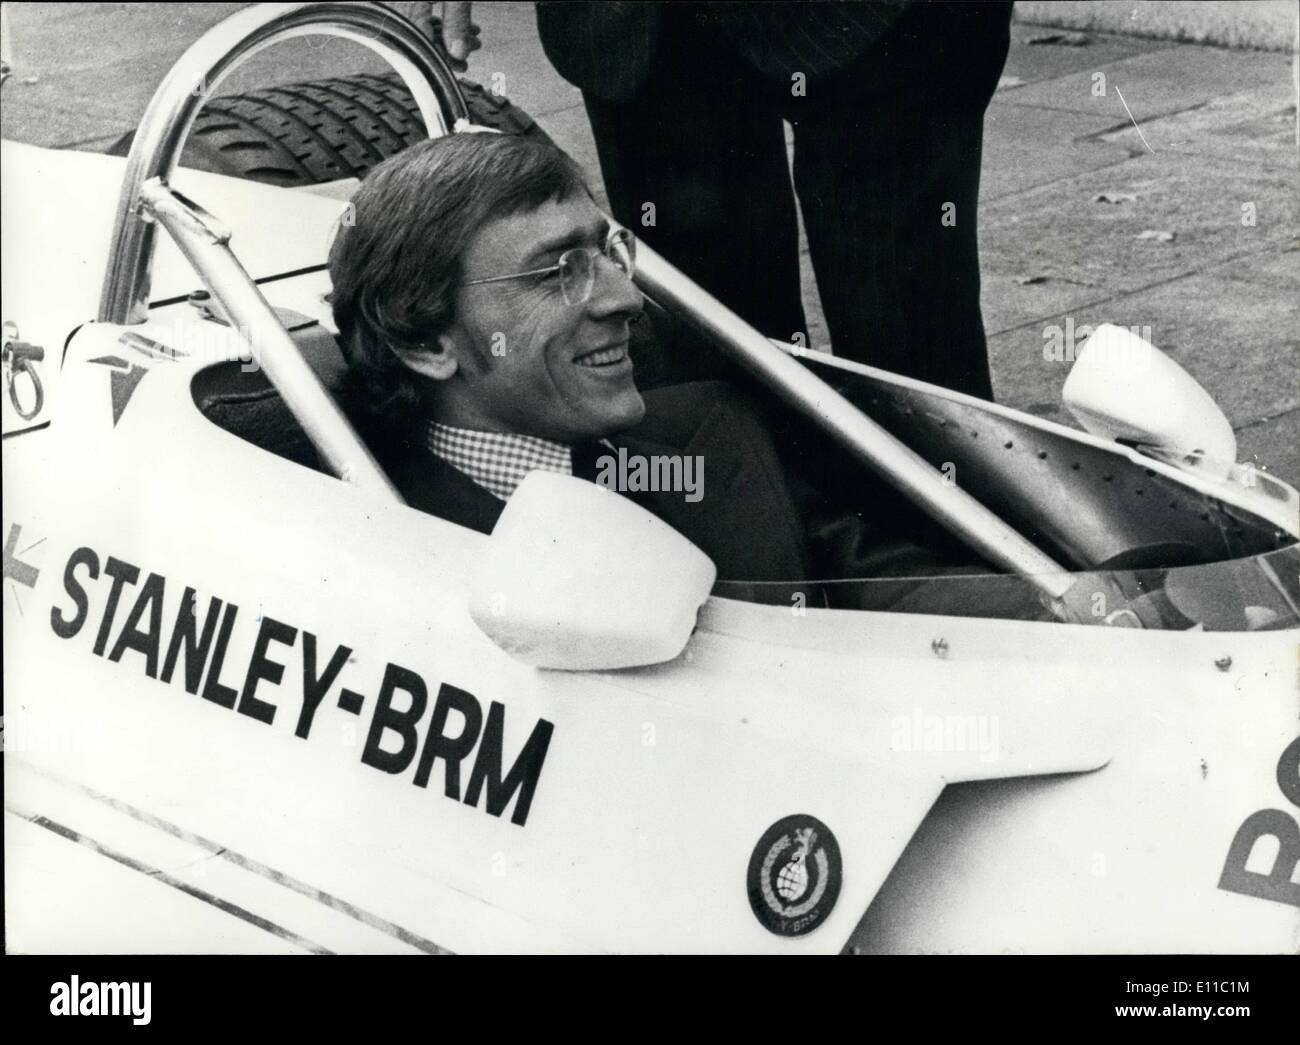 Dec. 12, 1976 - Introducing the new Stanley-BRM racing Car: BRM ...